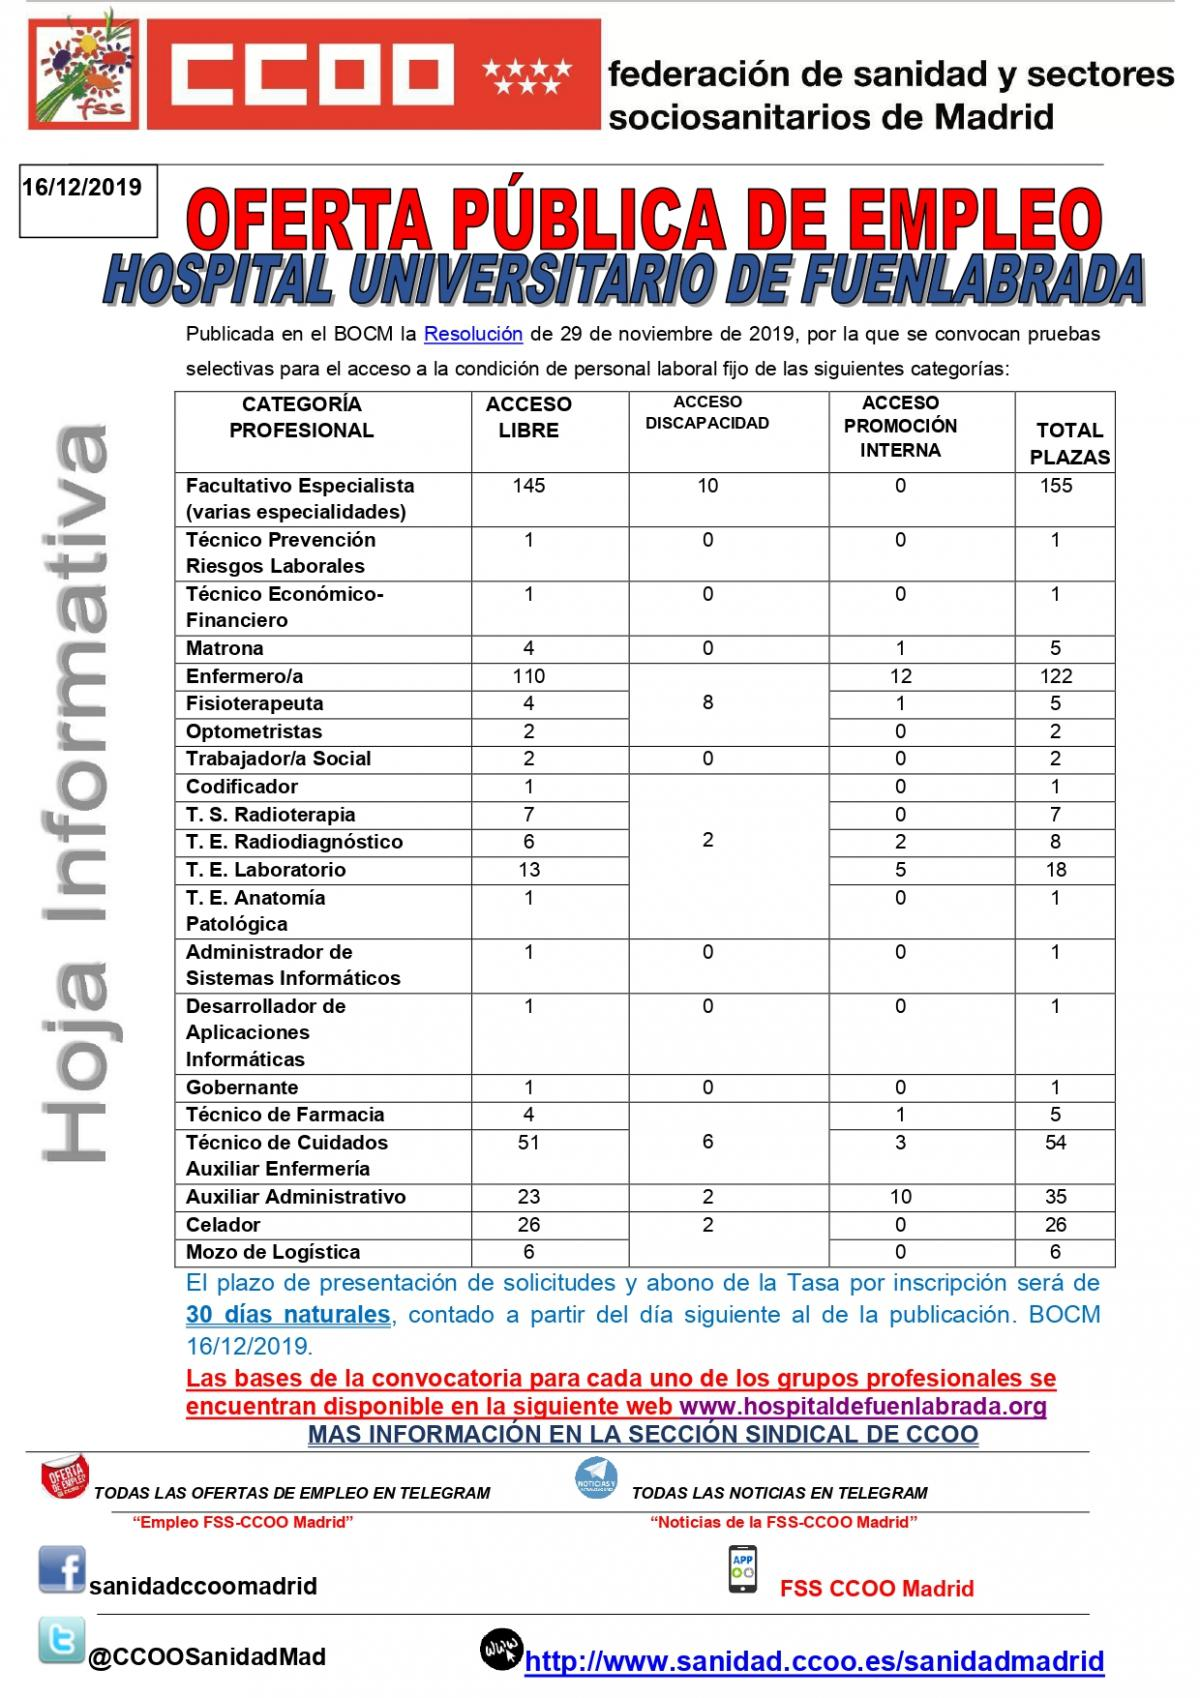 OPE Hospital Universitario de Fuenlabrada